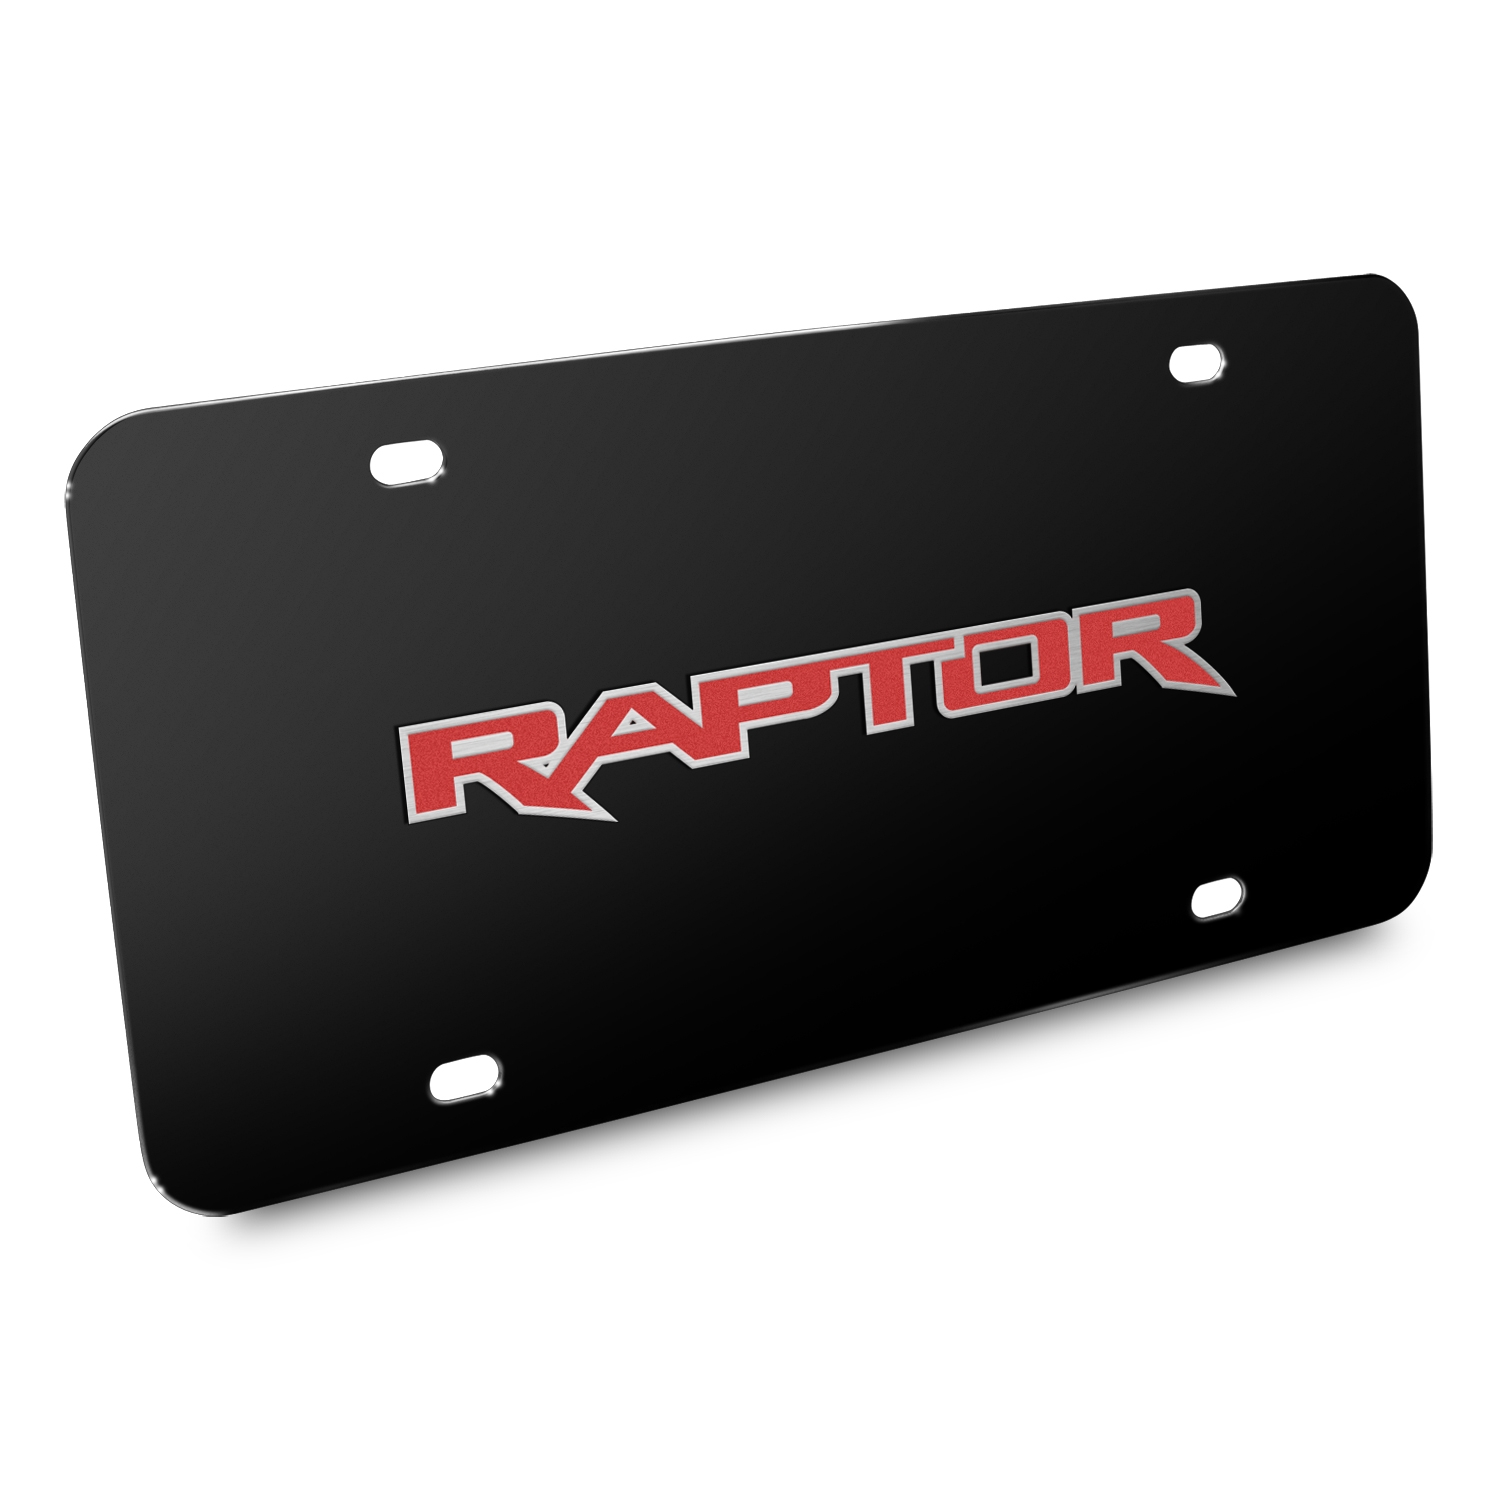 Ford 150 Raptor in Red 3D Black Stainless Steel License Plate